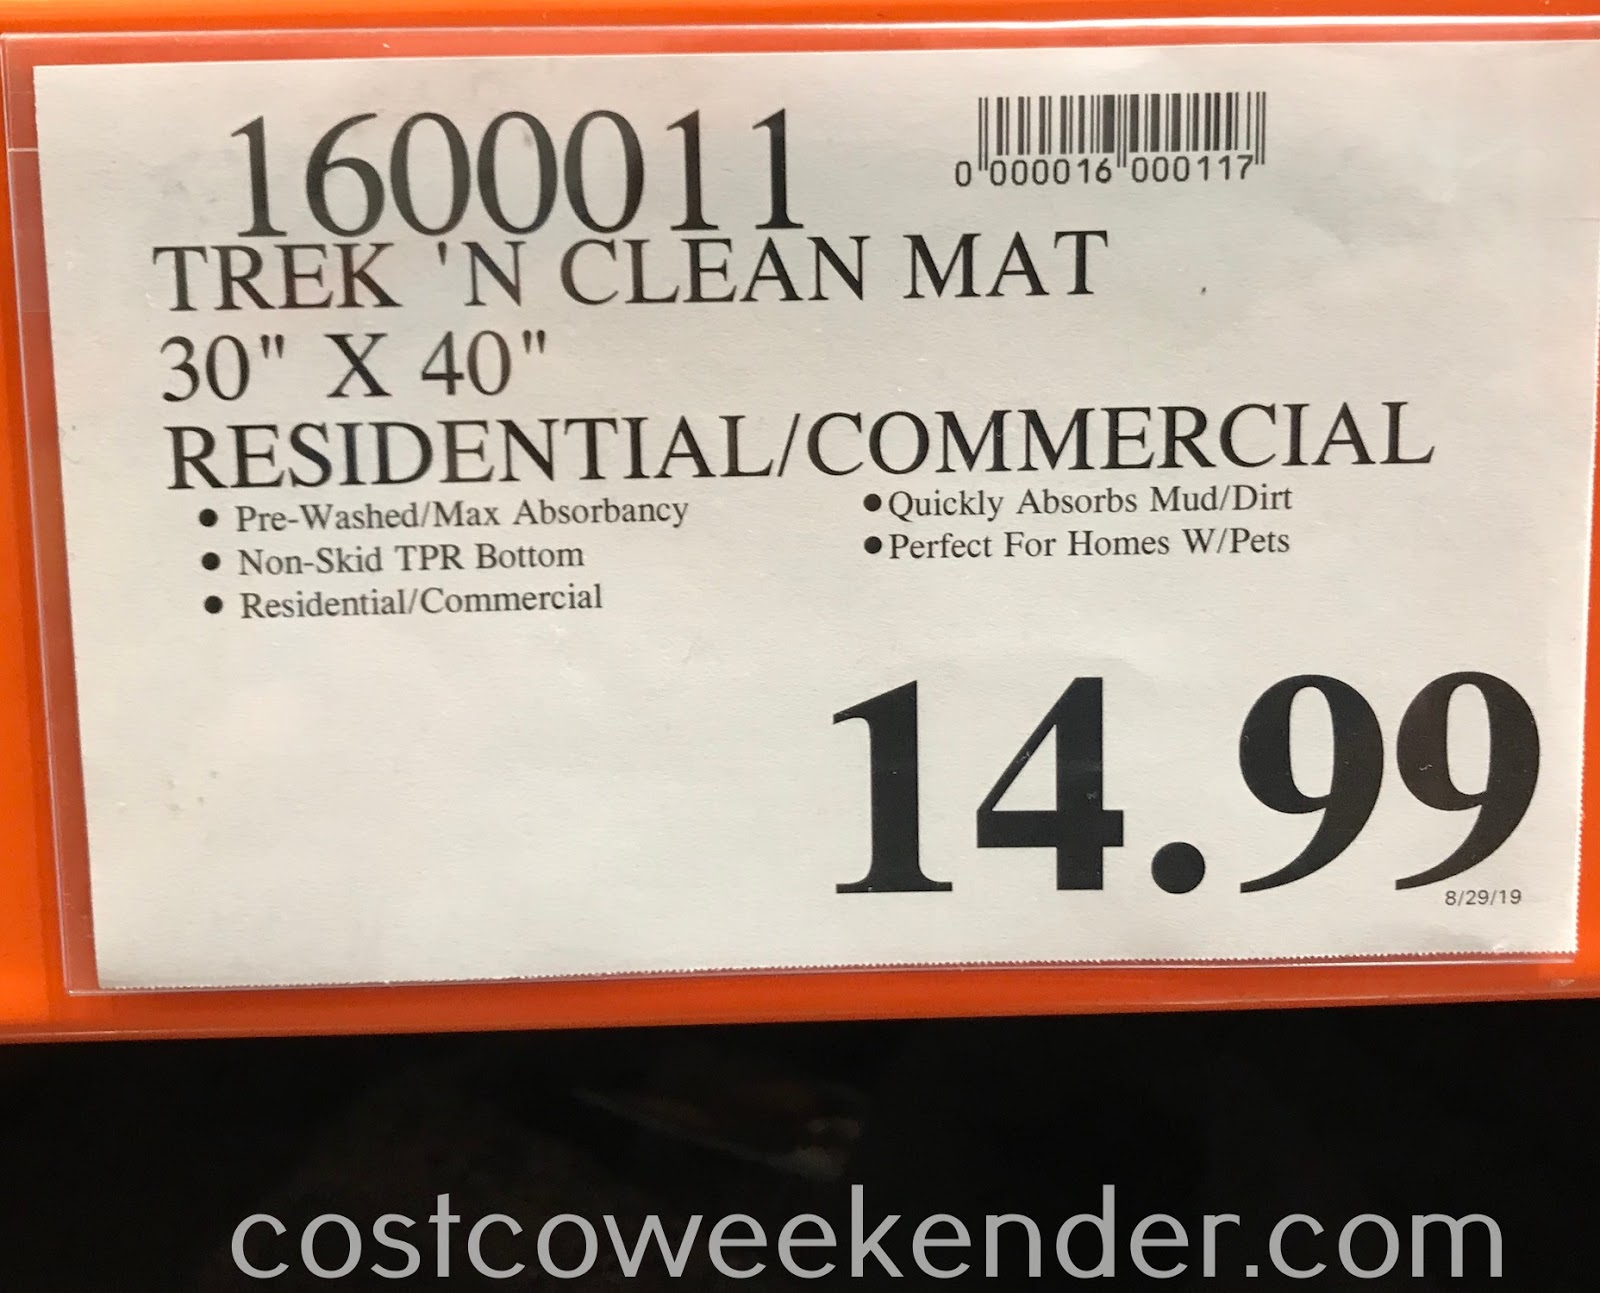 Deal for the Trek N' Clean Absorbent Floor Mat at Costco